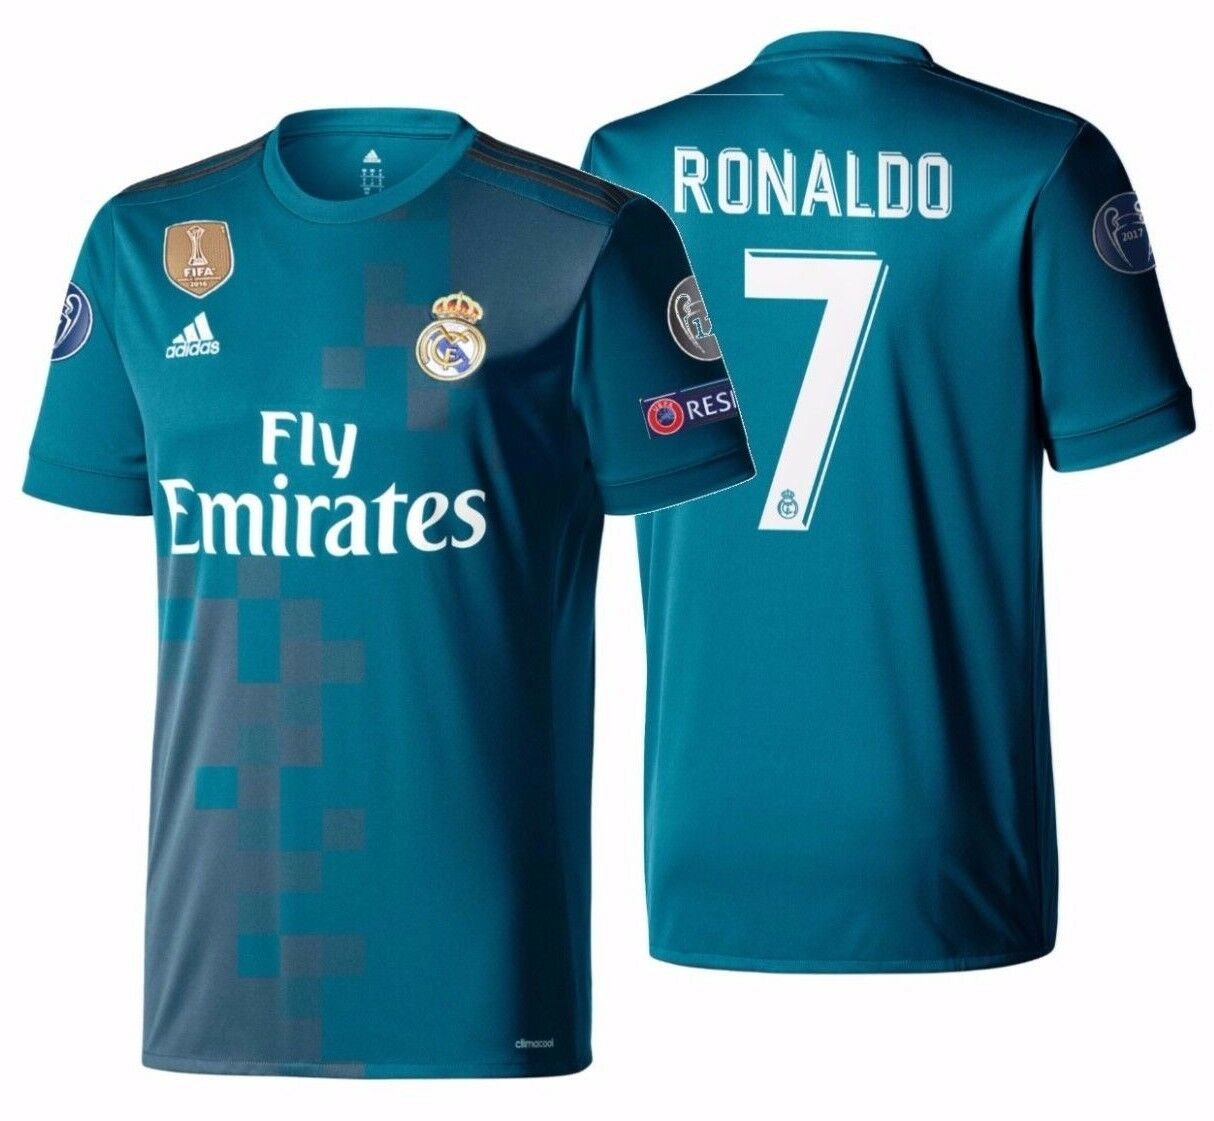 Cristiano Ronaldo Signed 2017 18 Real Madrid Third Soccer Jersey In Frame For Sale Online Ebay